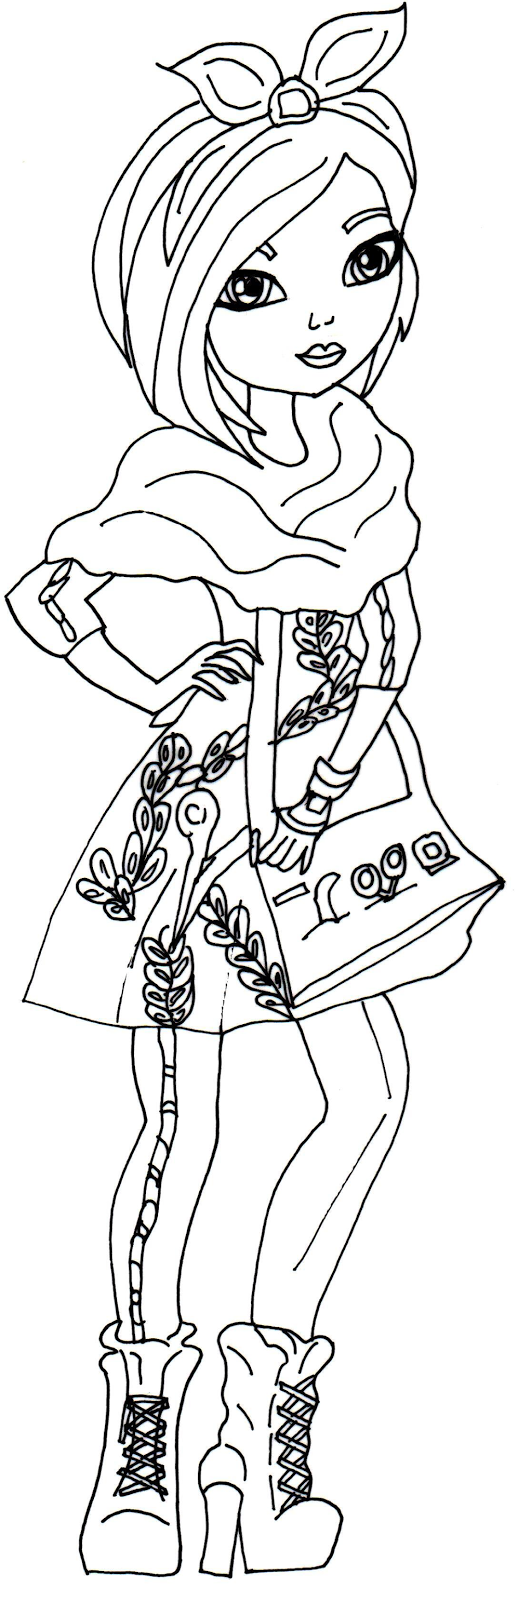 holly ohair coloring pages - photo#10